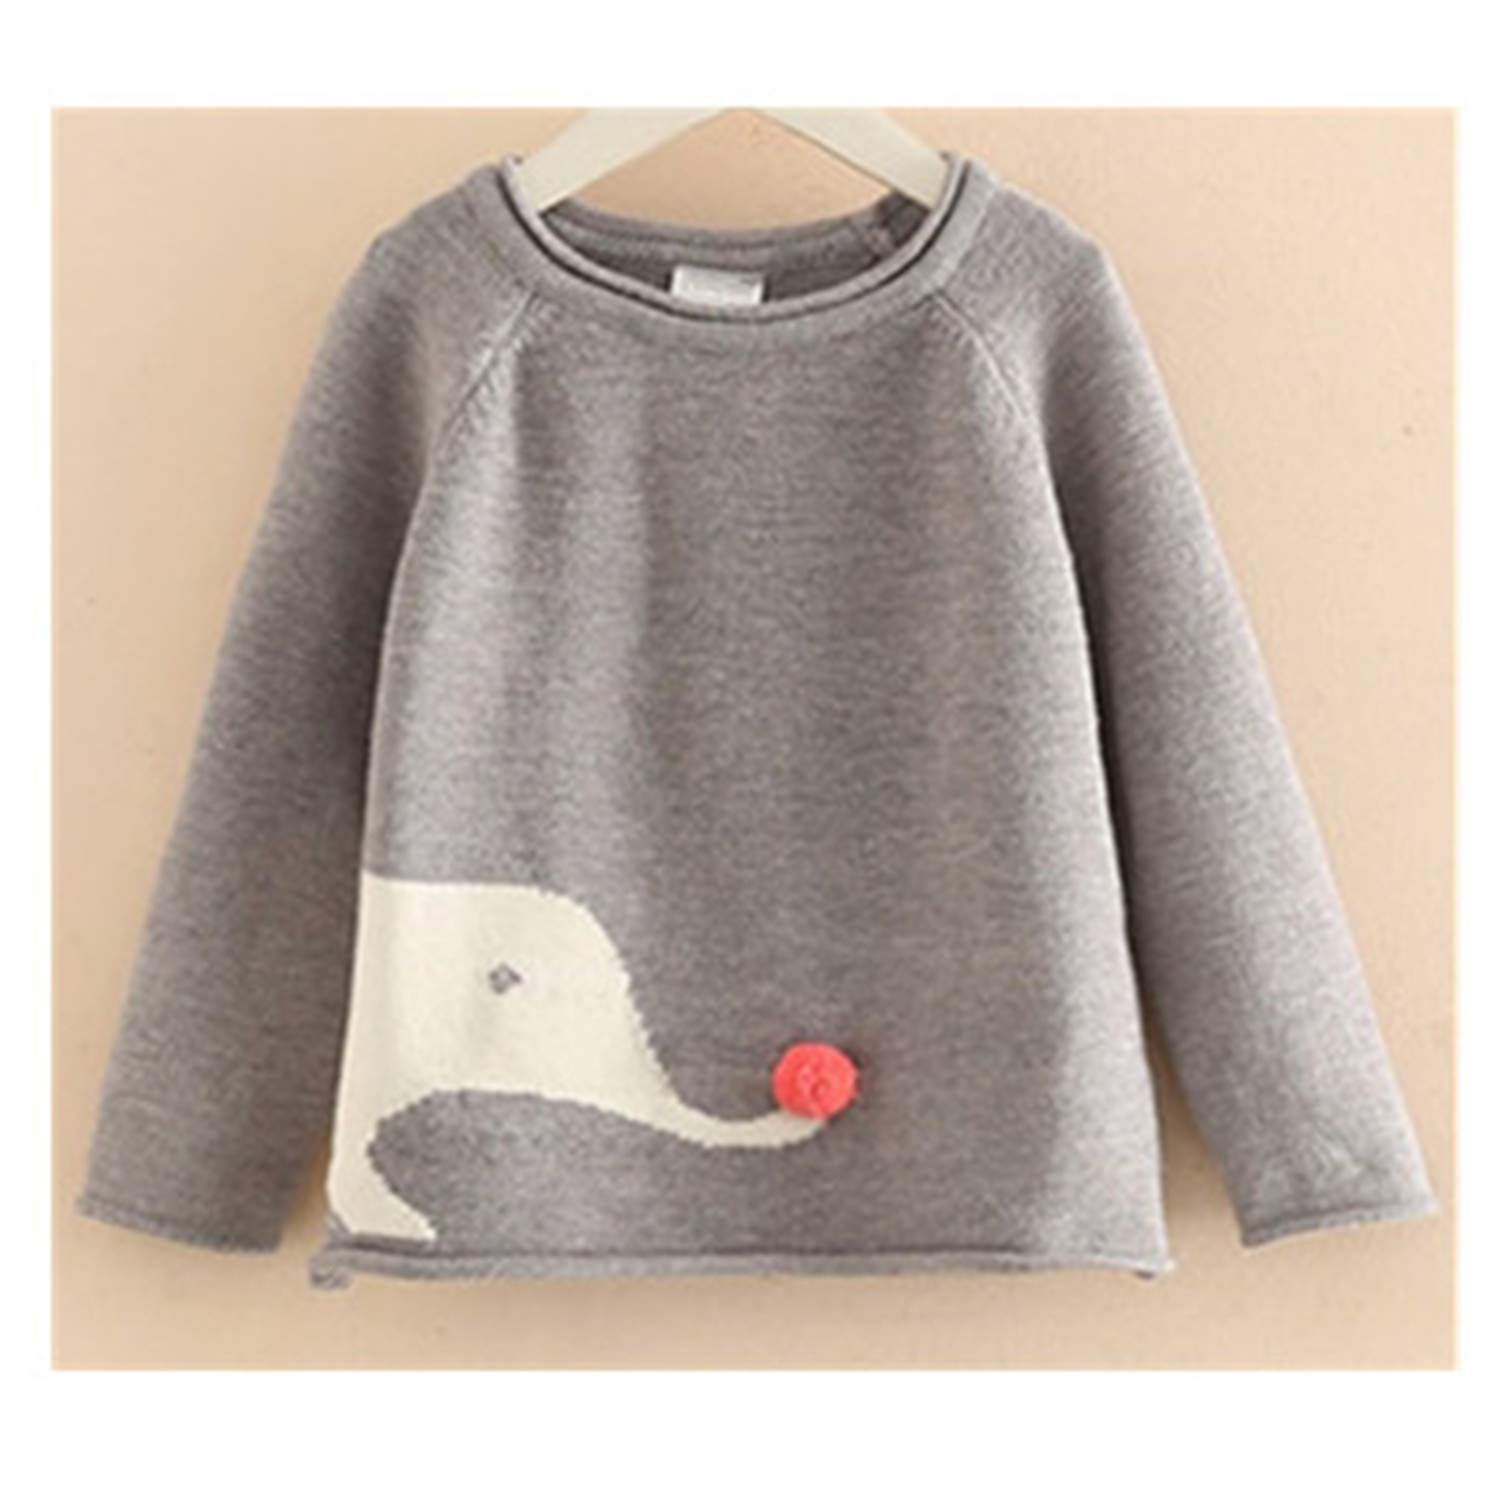 Gail Jonson Autumn Long Sleeve Kids Clothes Cotton Cartoon Elephant Pattern Knitted Pullover Girls Sweaters Gray 3T